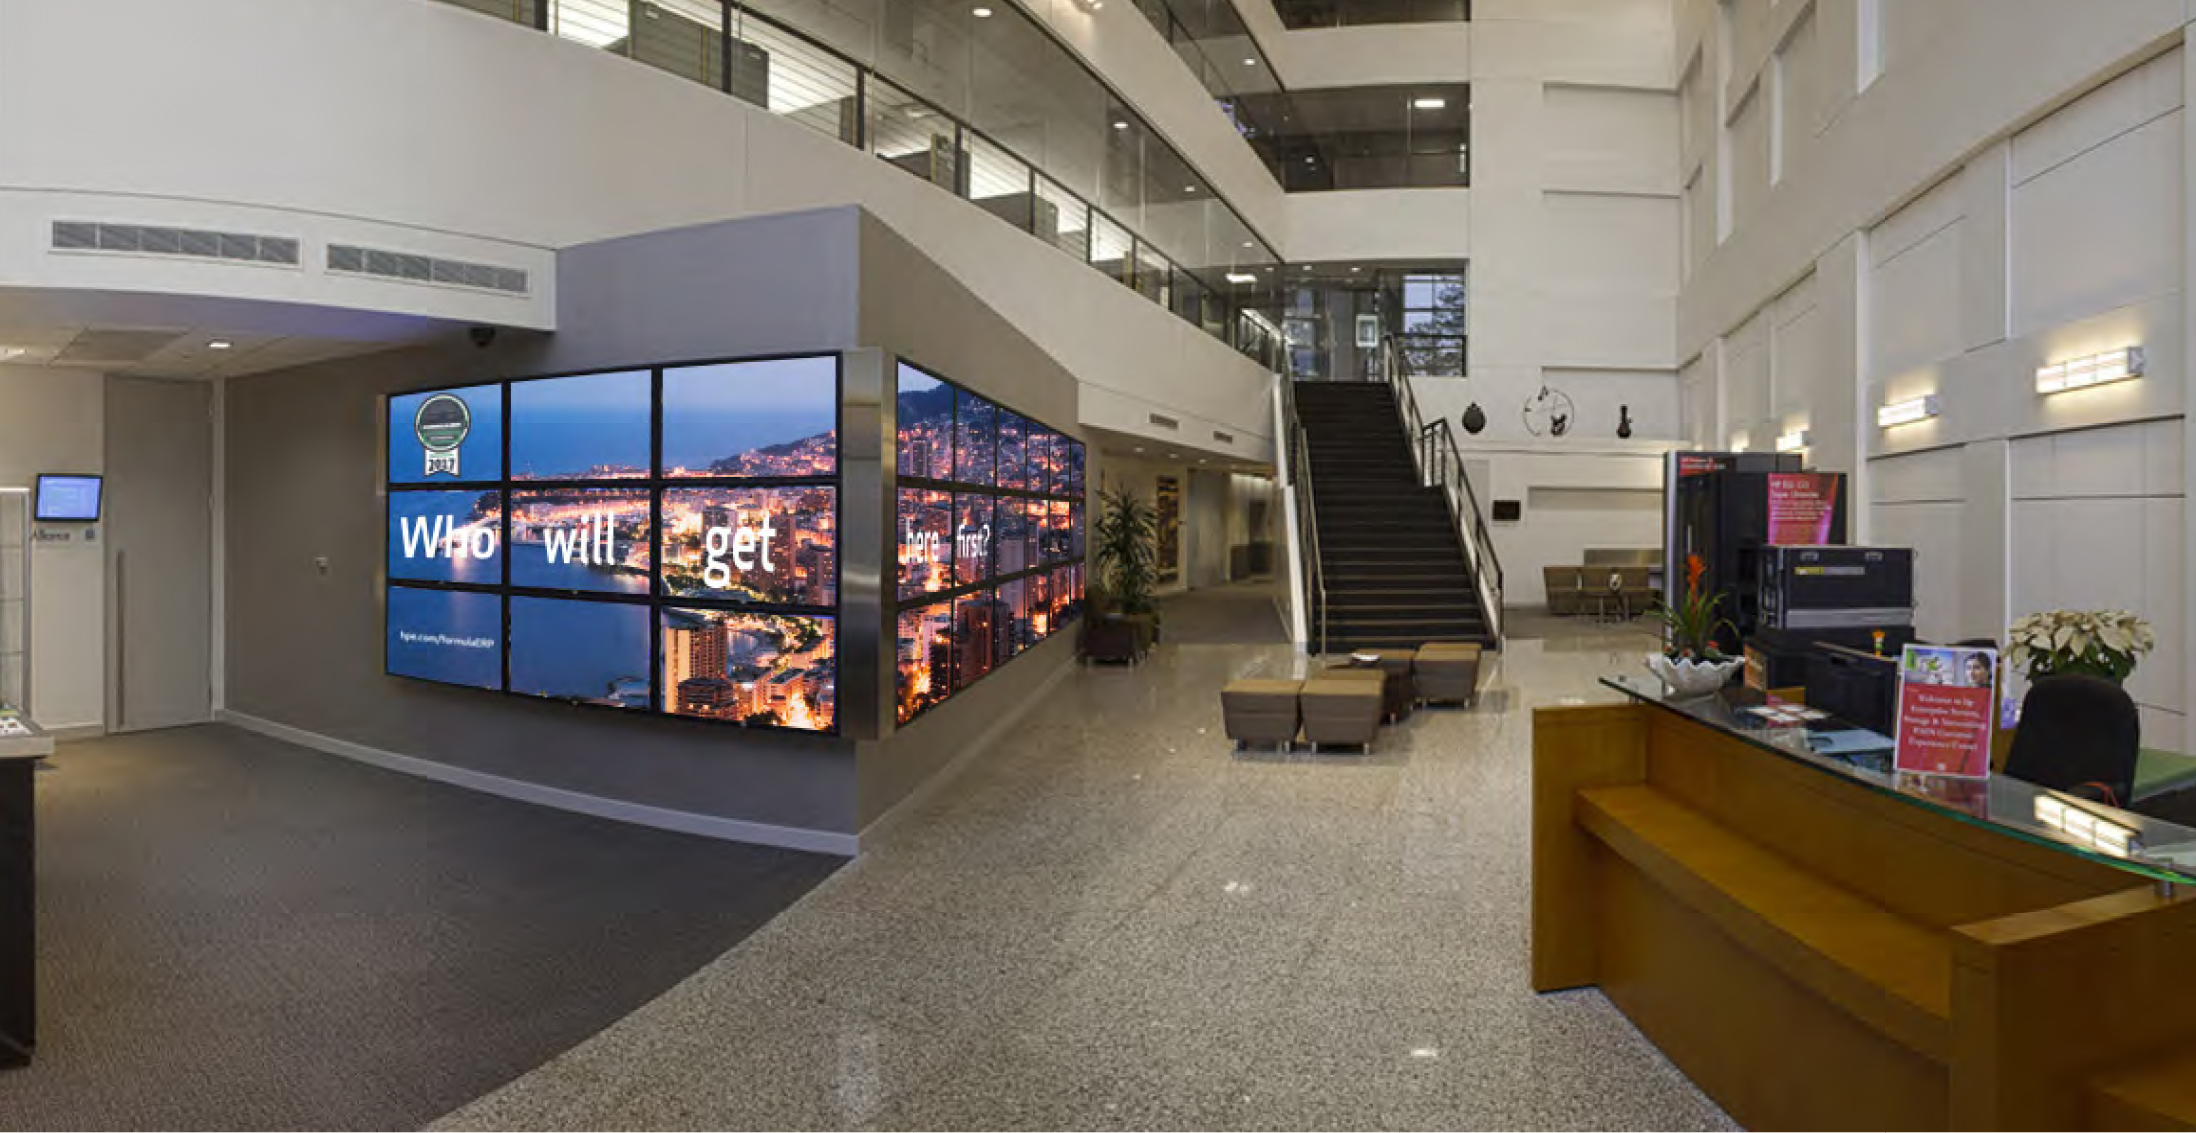 HPE Lobby Video and Promotional Program Display